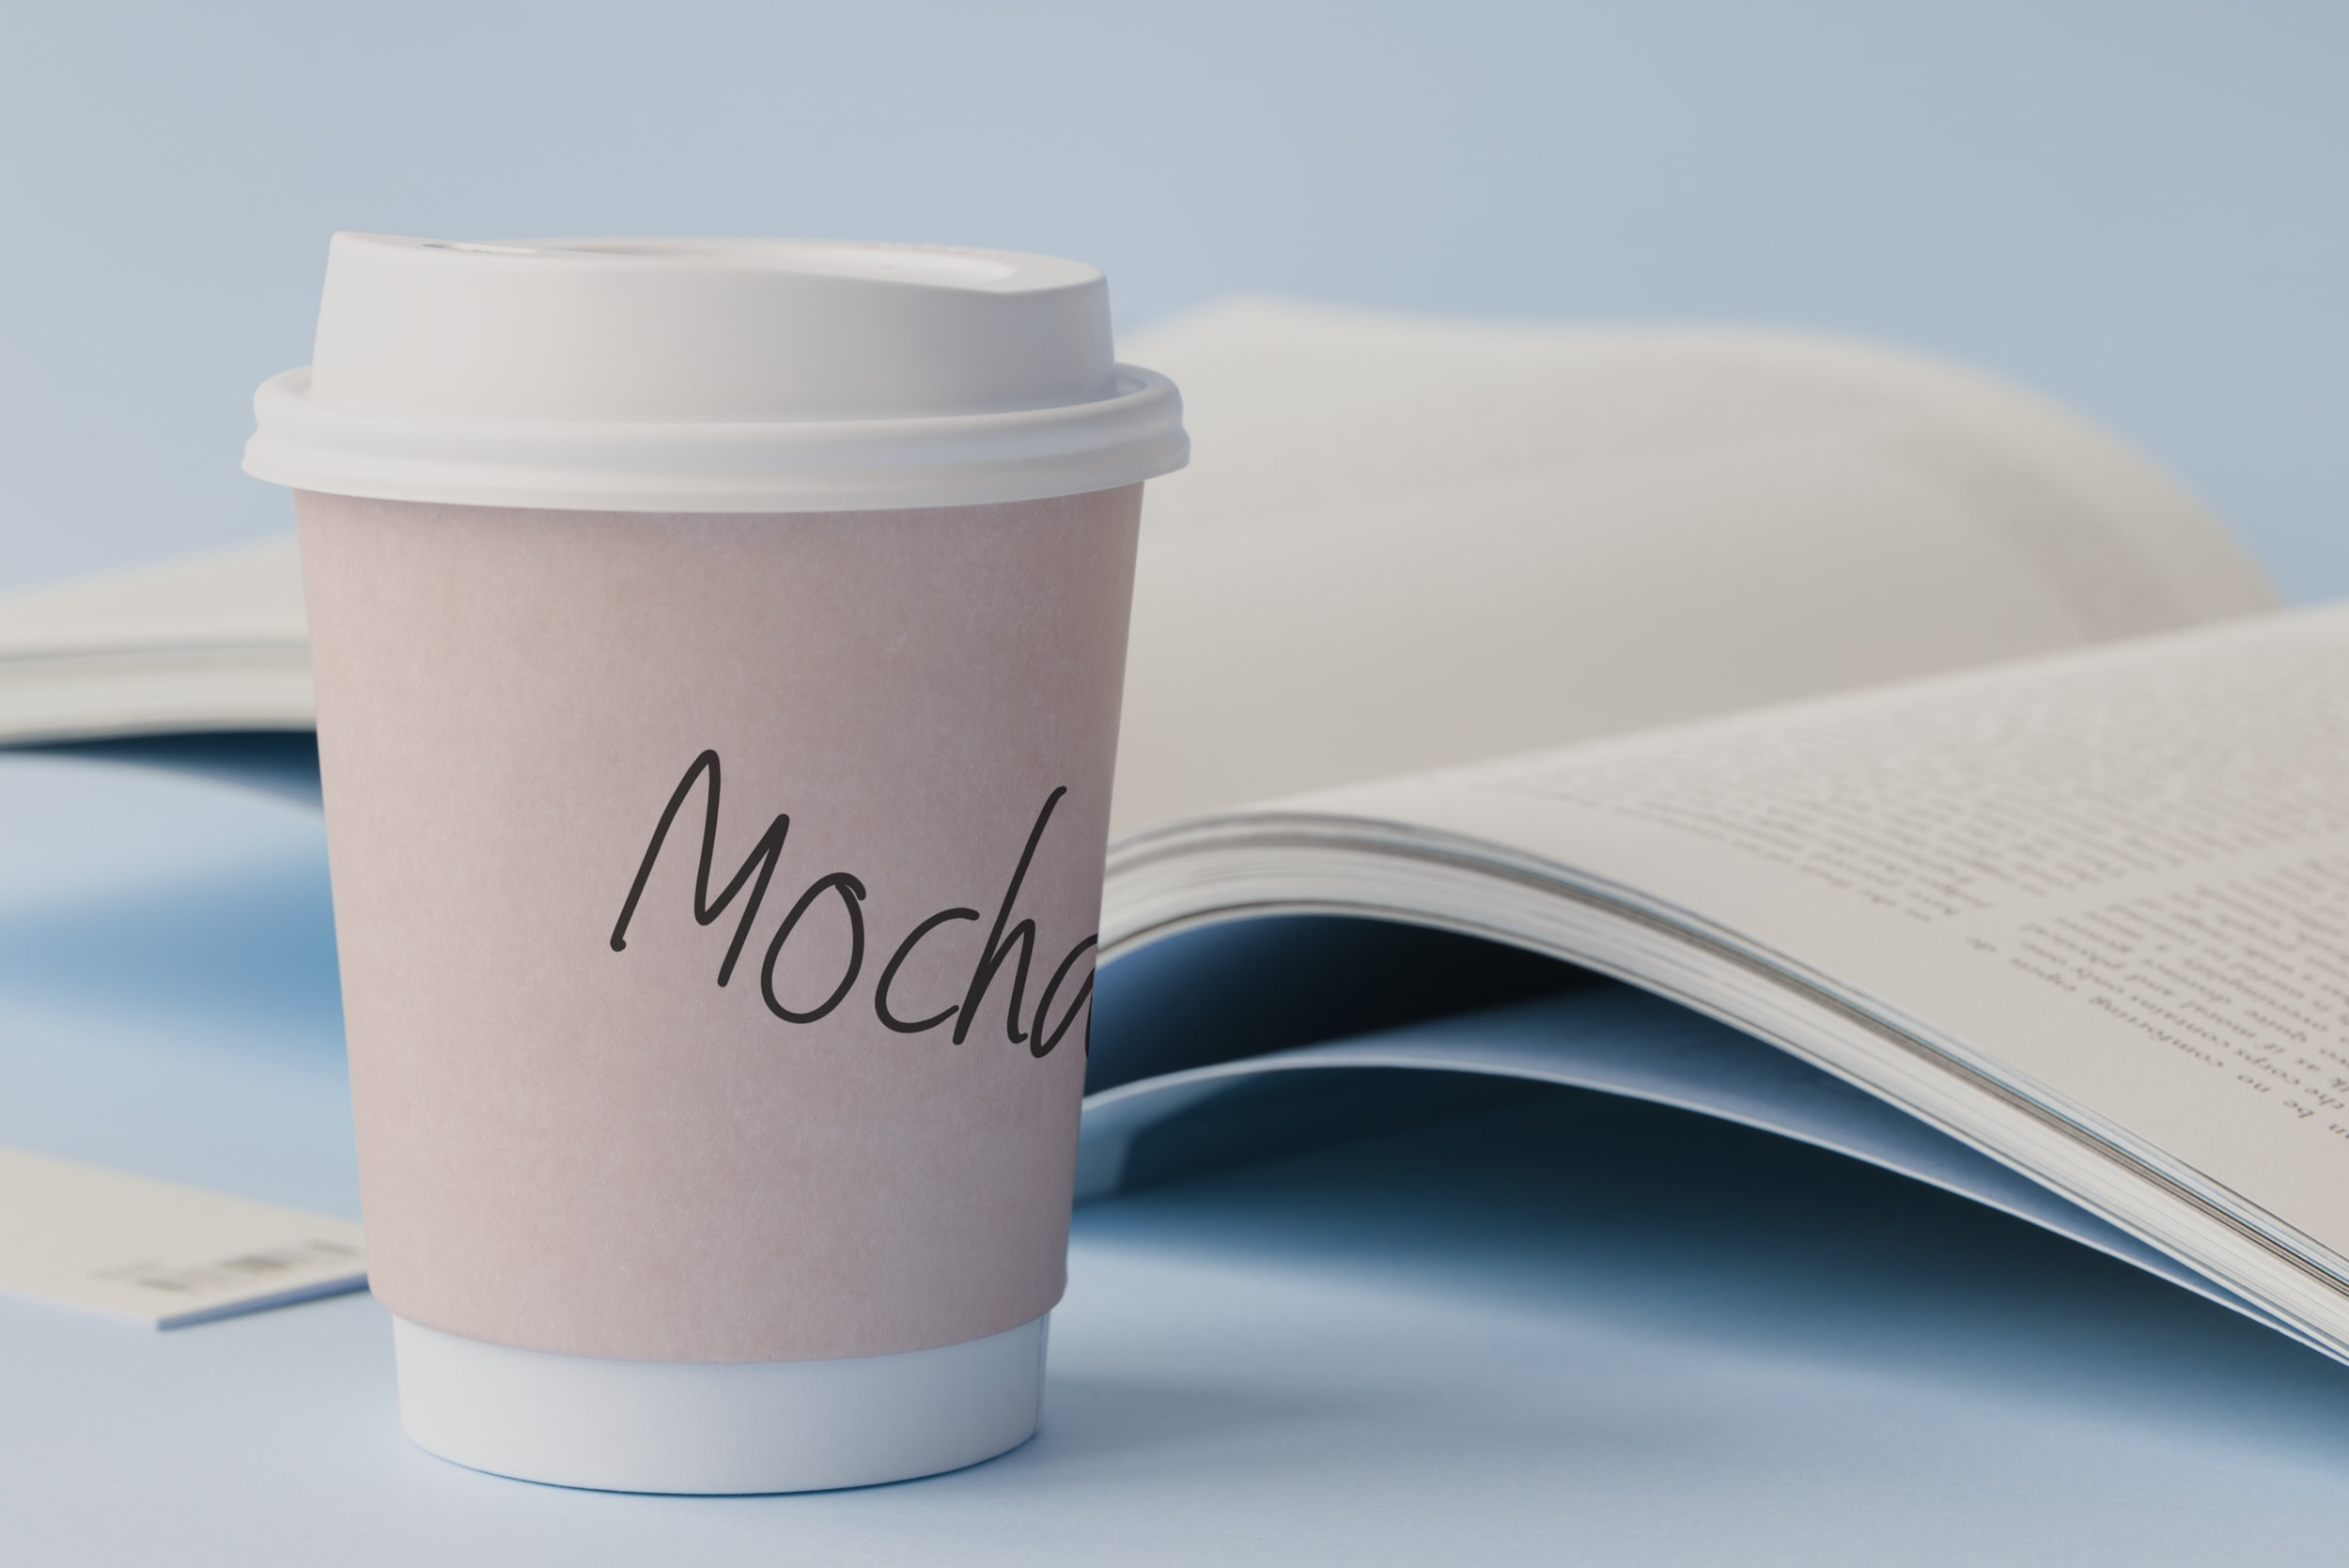 white paper cup on top of white surface beside book